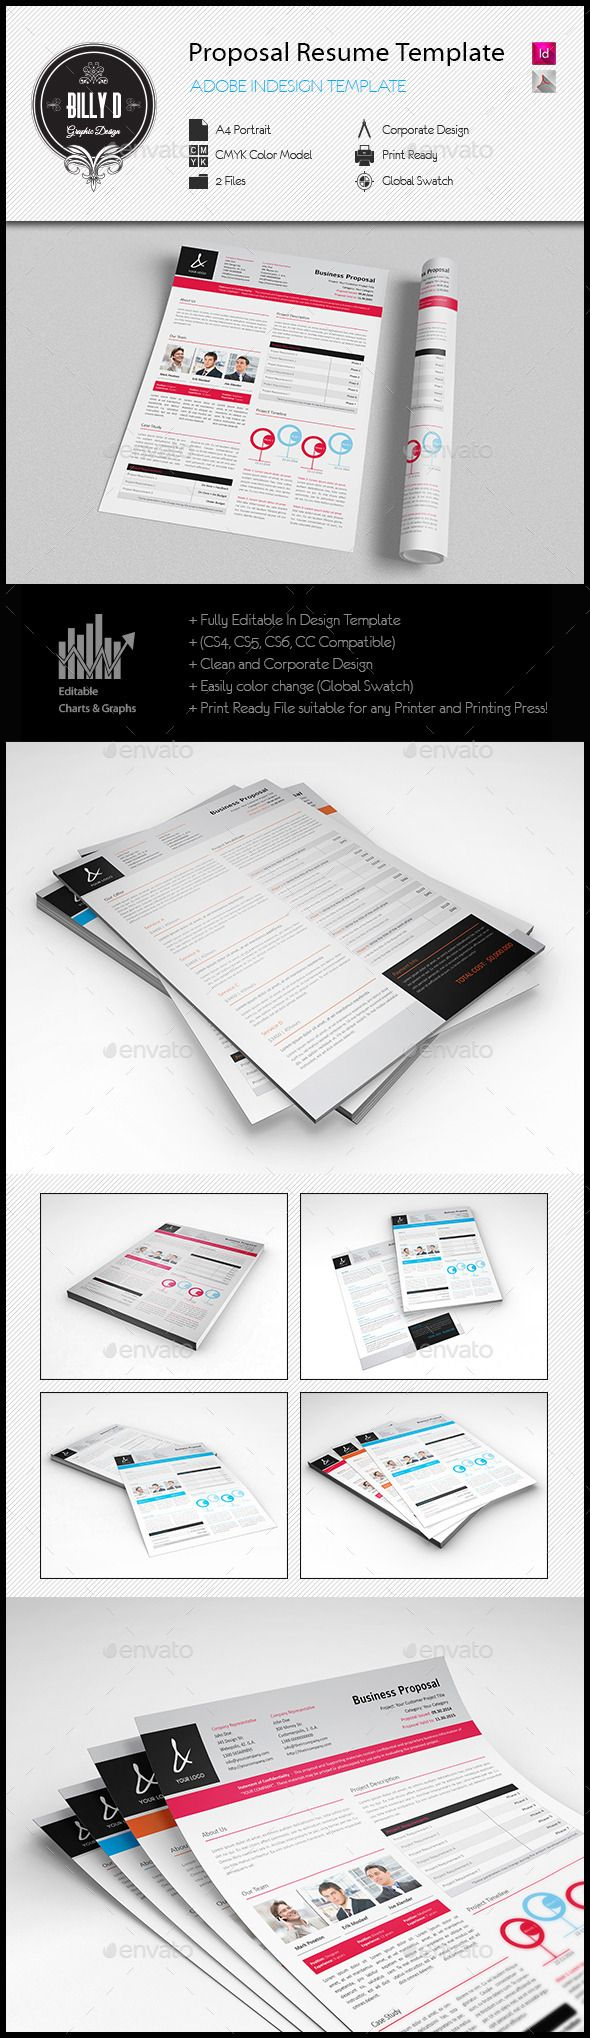 Proposal Resume Template | Download: http://graphicriver.net/item/proposal-resume-template/8888930?ref=ksioks